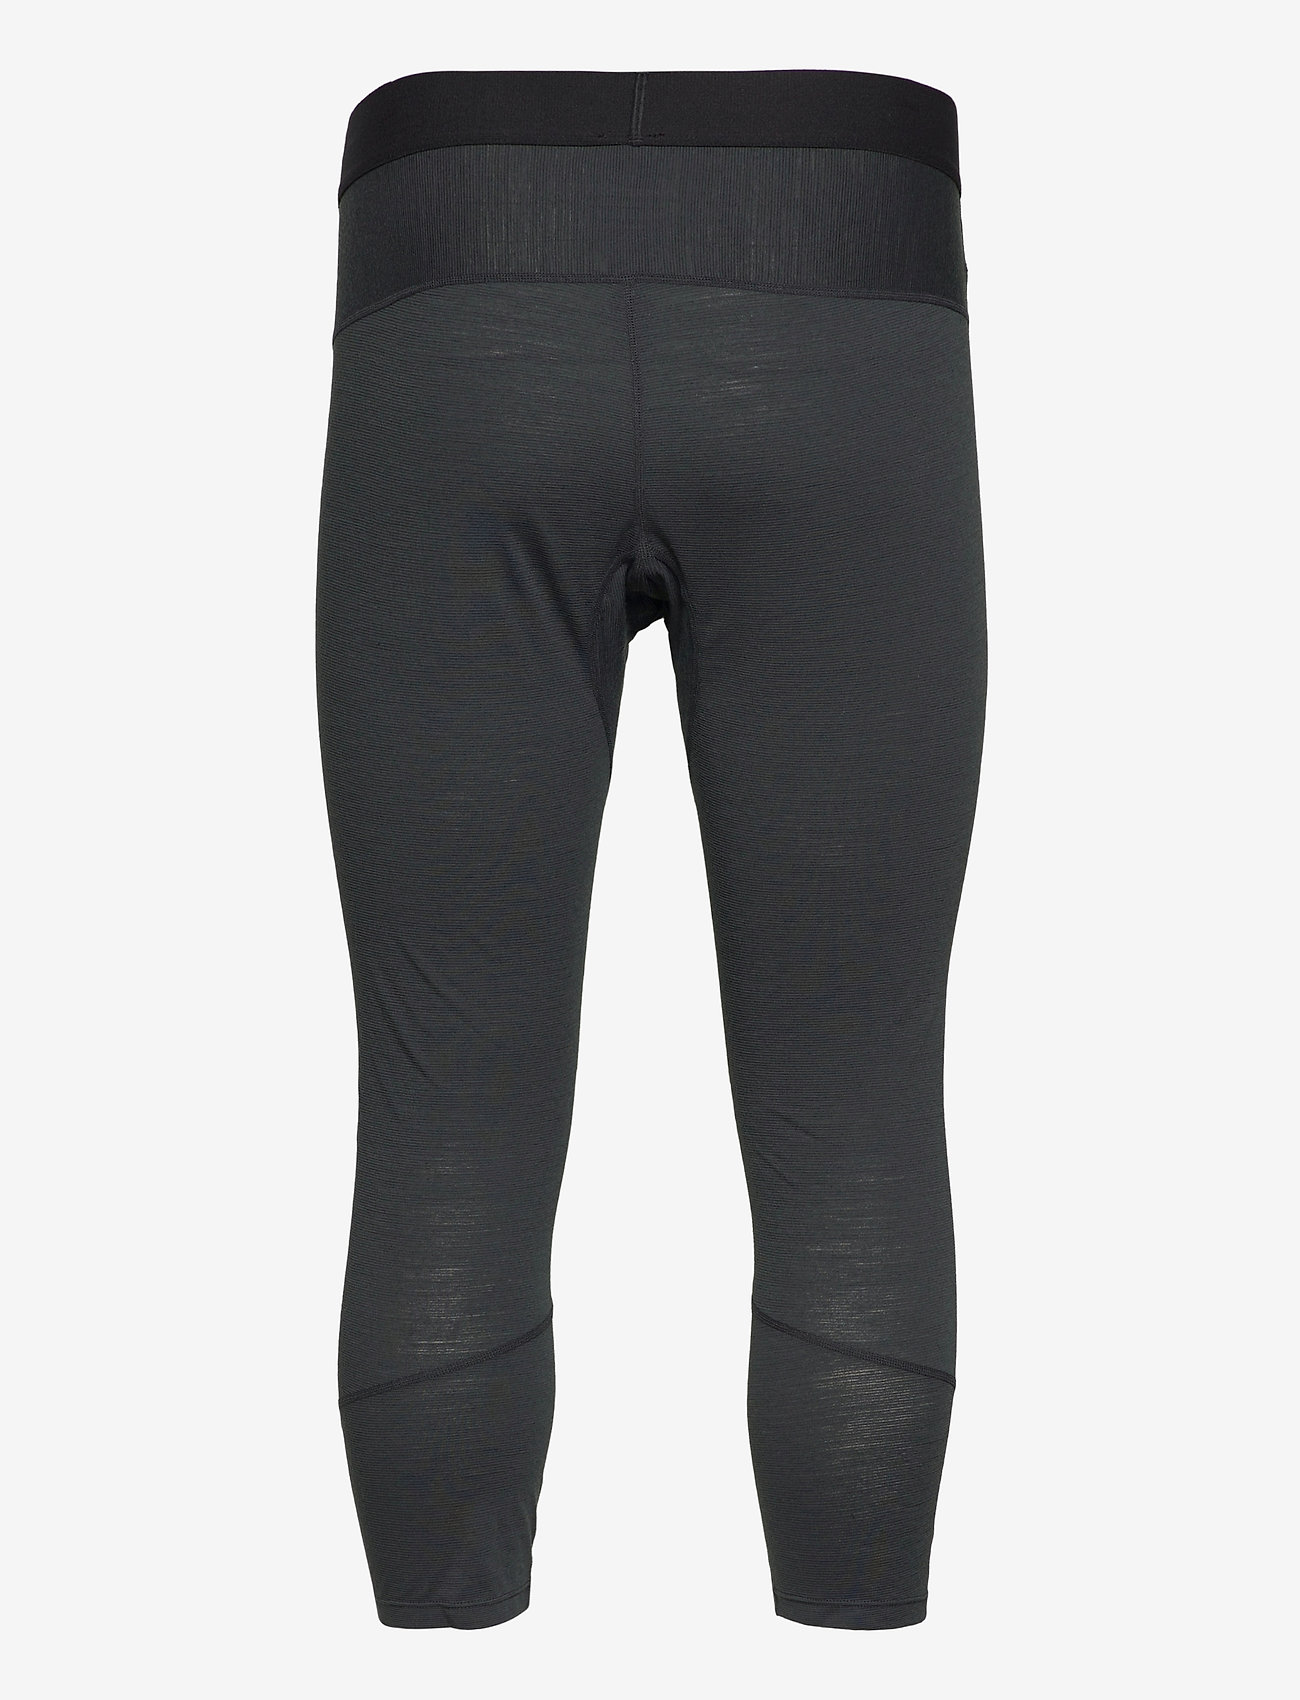 Norrøna - equaliser merino 3/4 Longs M's - base layer bottoms - caviar - 1